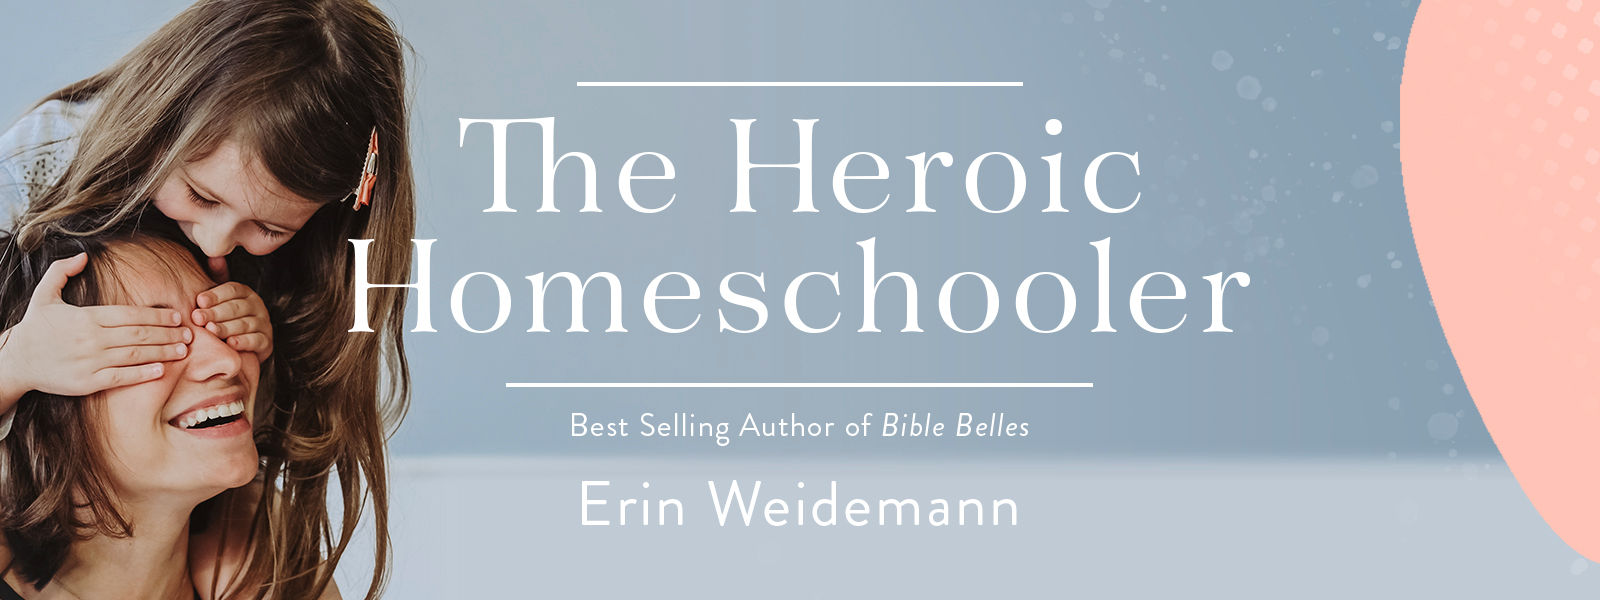 The Heroic Homeschooler: How to do School at Home with Confidence During COVID-19